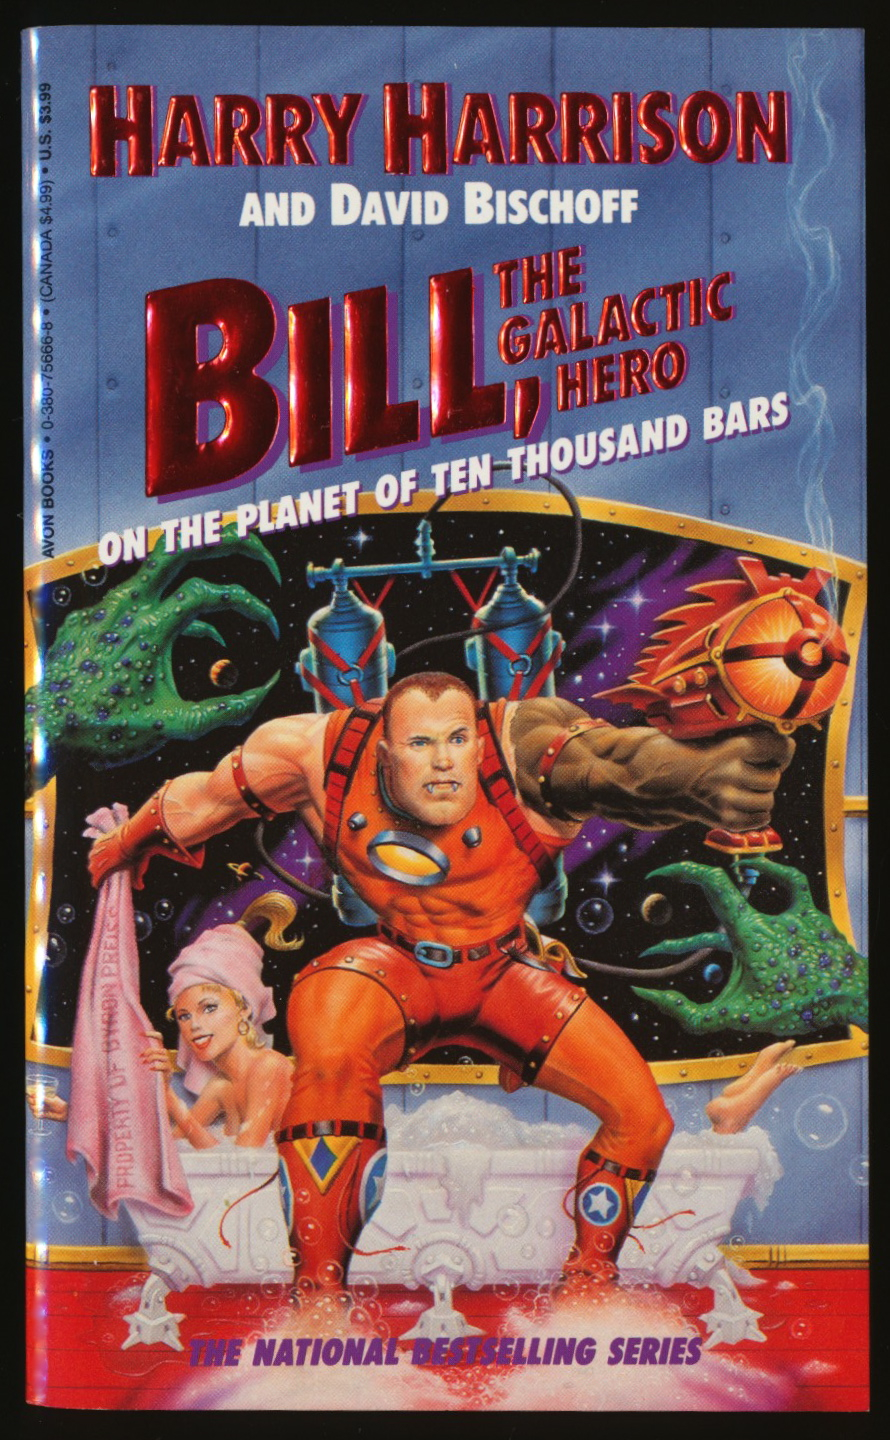 Bill The Galactic Hero furthermore Letter Sounds Activity And Ice Melt Experiment For Kids Preschool Literacy And Science Ideas X in addition Alphabet Photography Alfagram Letter J Old Door Handle In Paris additionally Font Barcode furthermore Blue Iphone In Box Hi. on alphabet letter art images